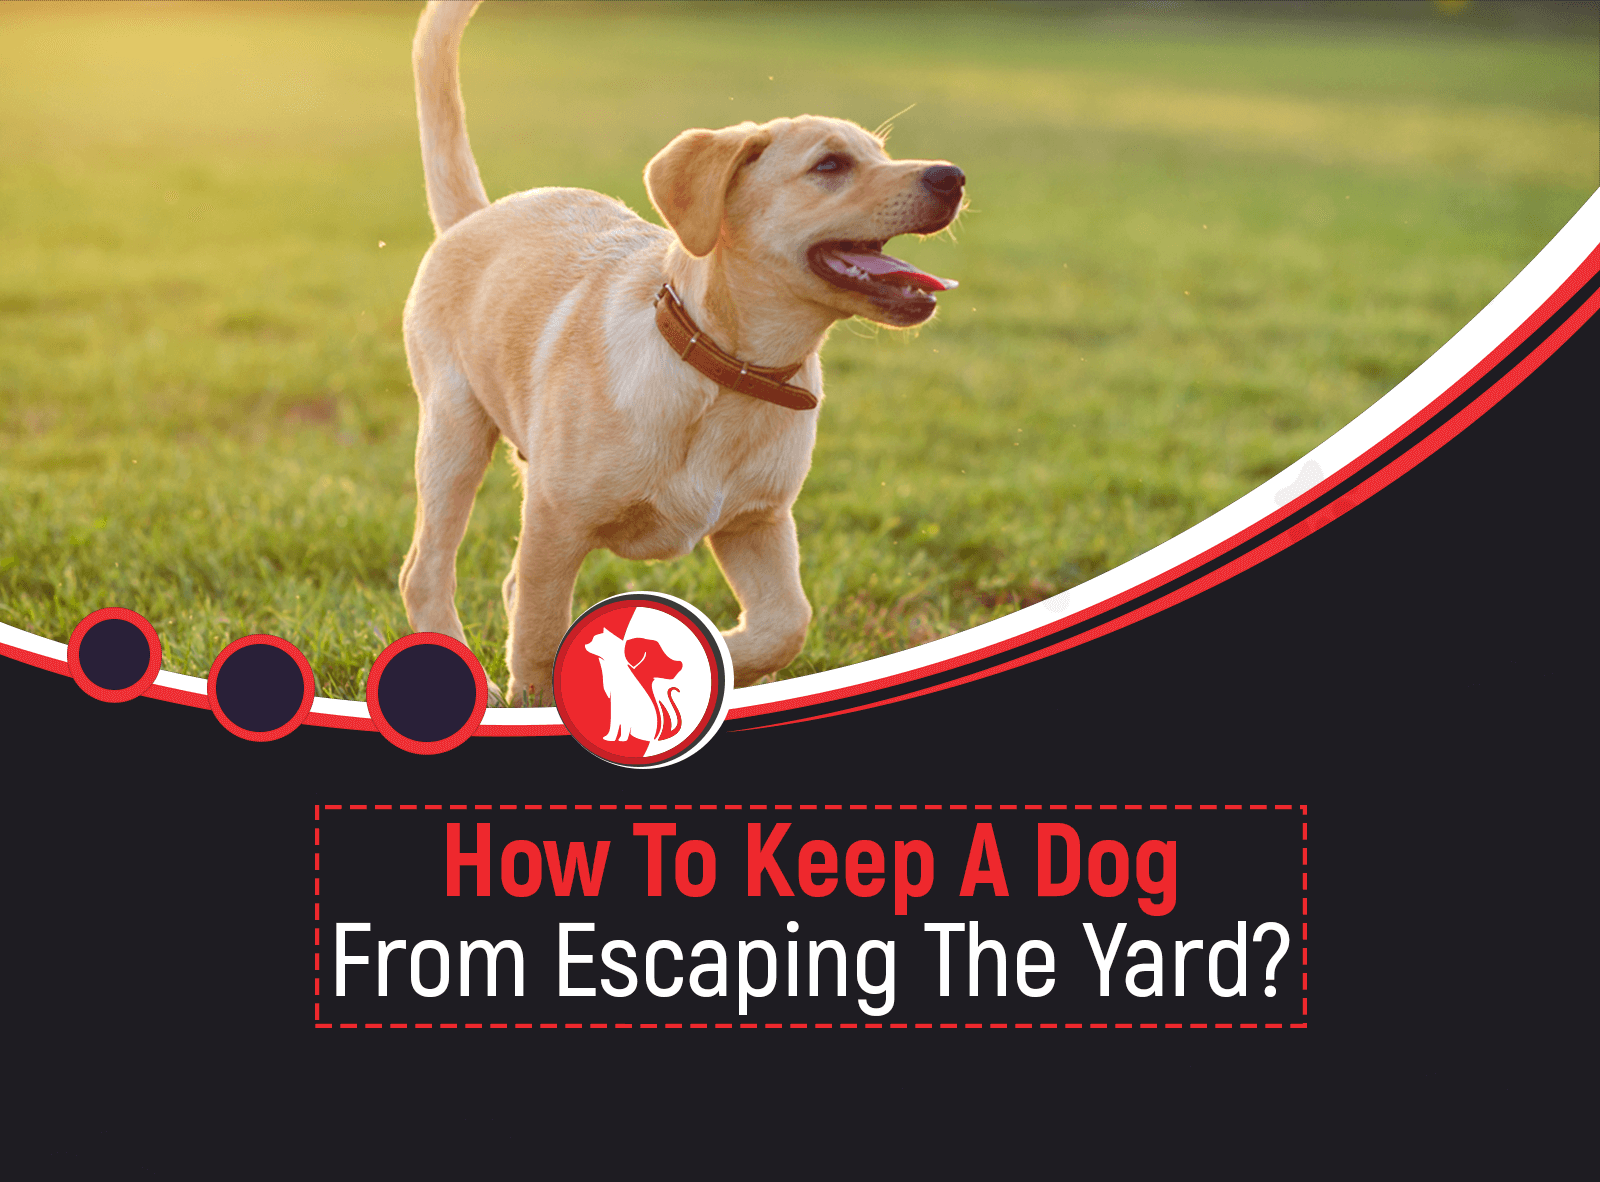 How to Keep a Dog from Escaping the Yard